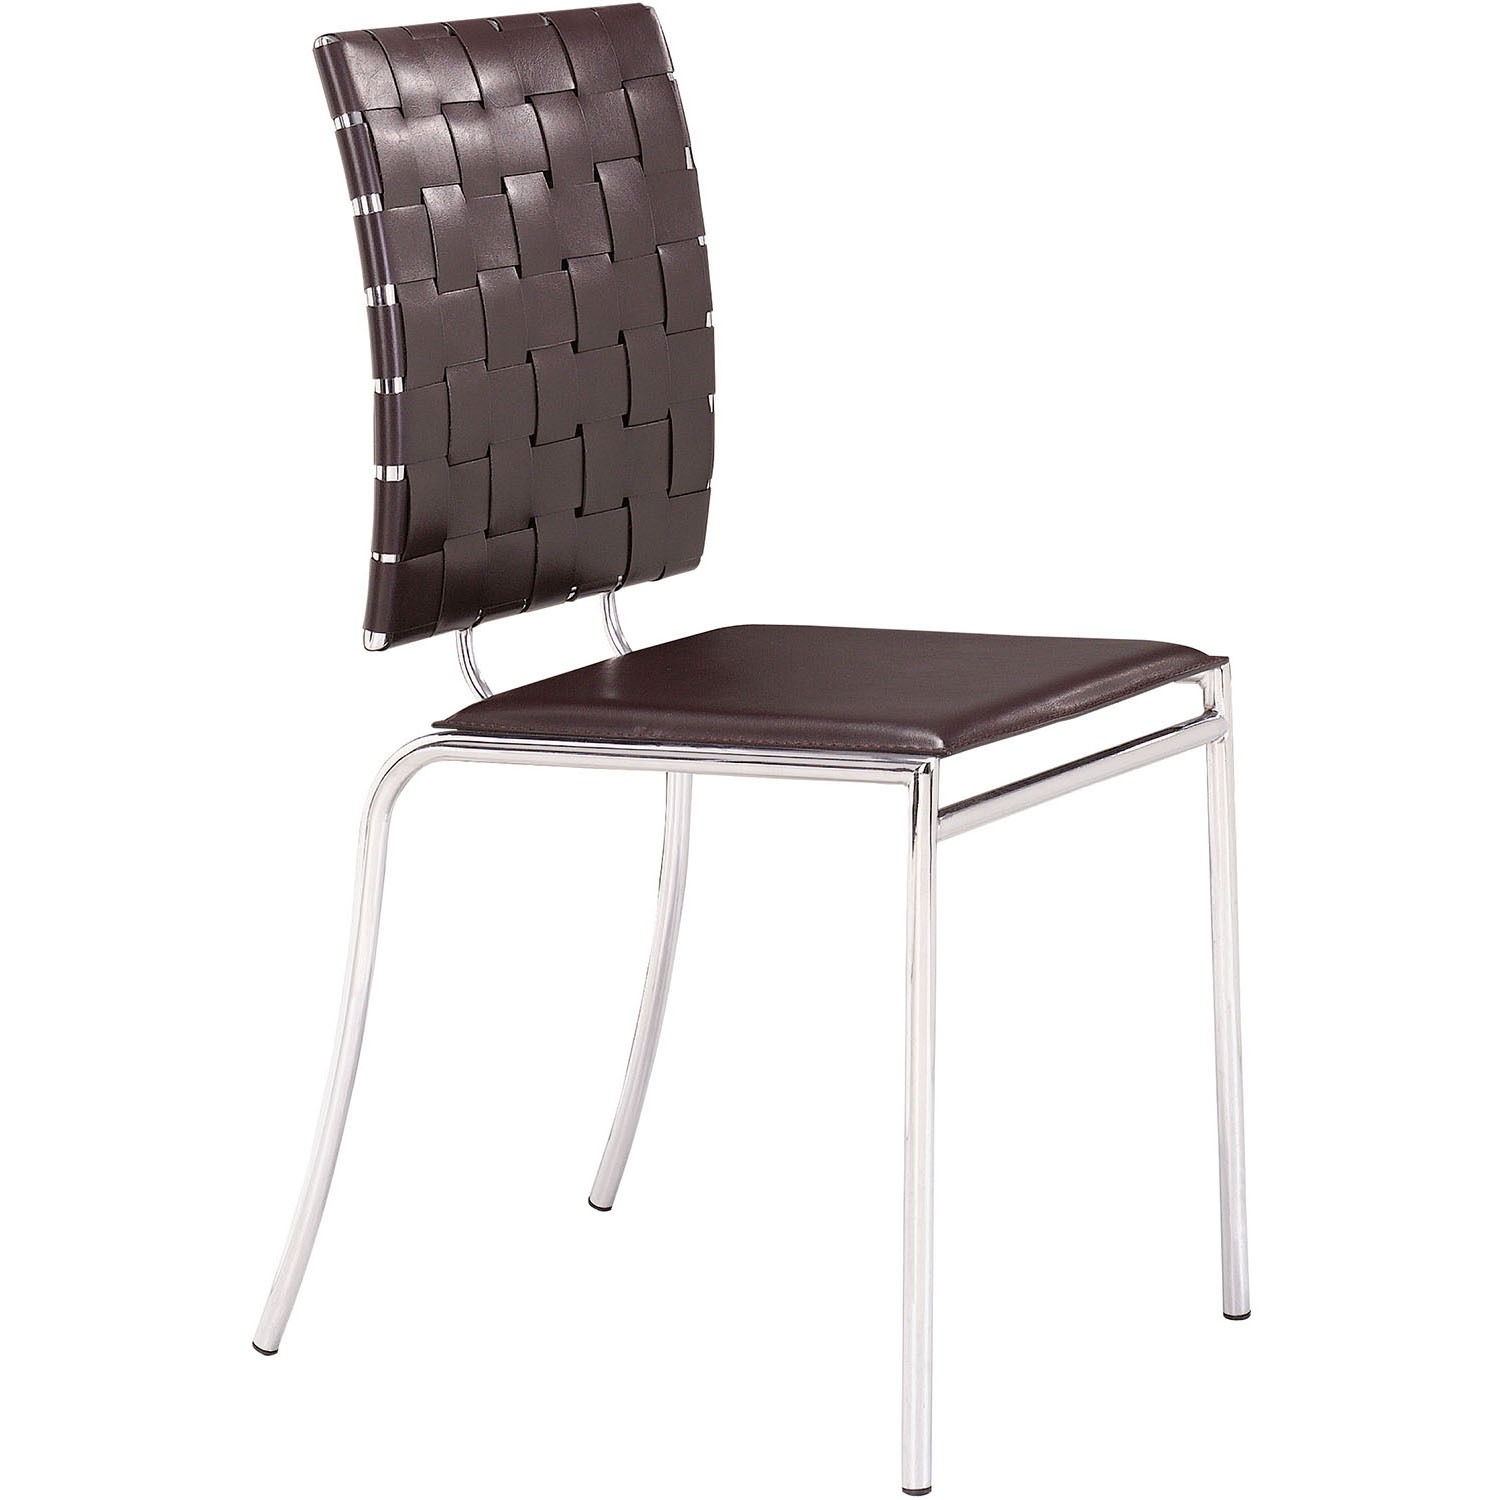 Wonderful Modern Criss Cross Dining Chairs  Product Photo